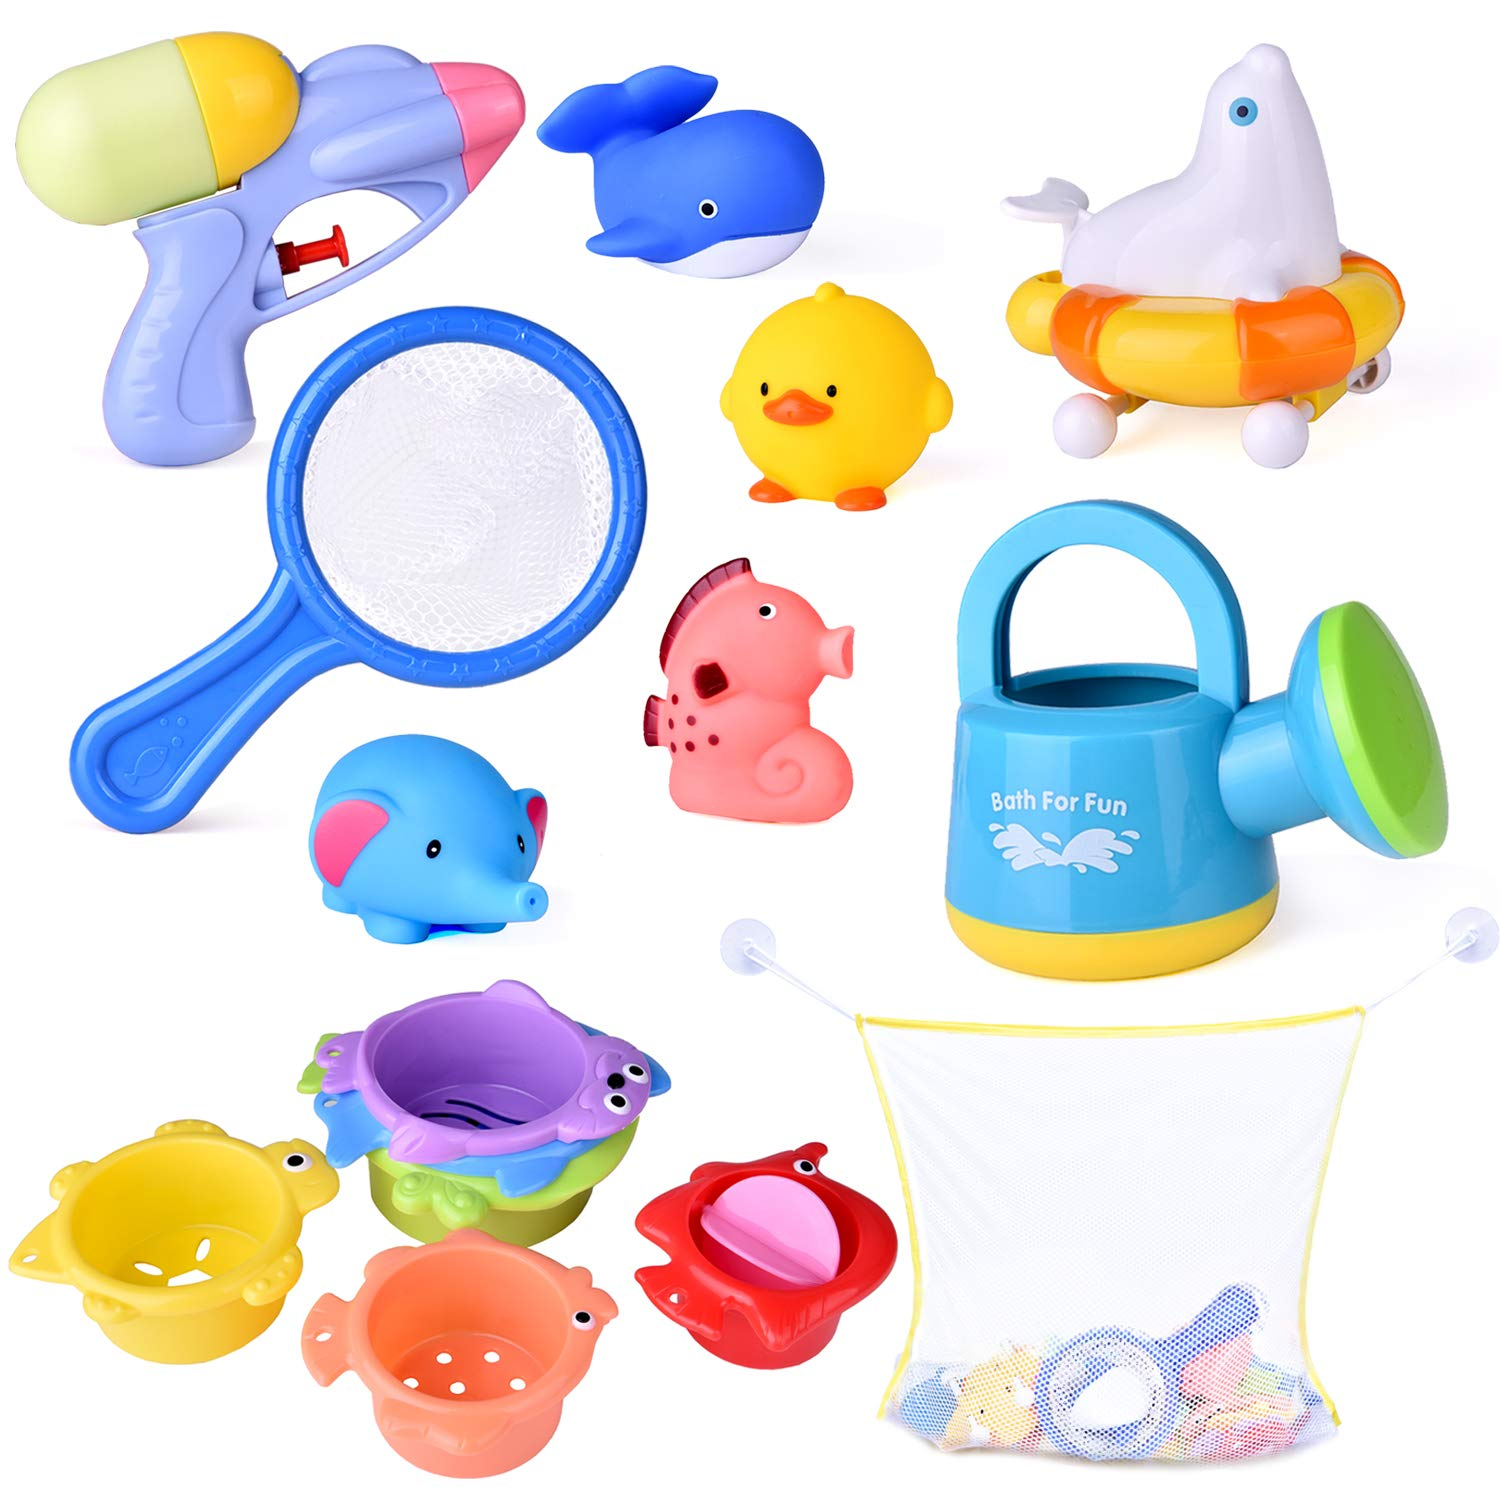 15 PCs Baby Bath Toys with Ocean Animals Bath Squirters Toys, Stacking Cups, Water Blaster Toys, Watering Can, Fishing Net and Bath Toy Organizer FUN LITTLE TOYS